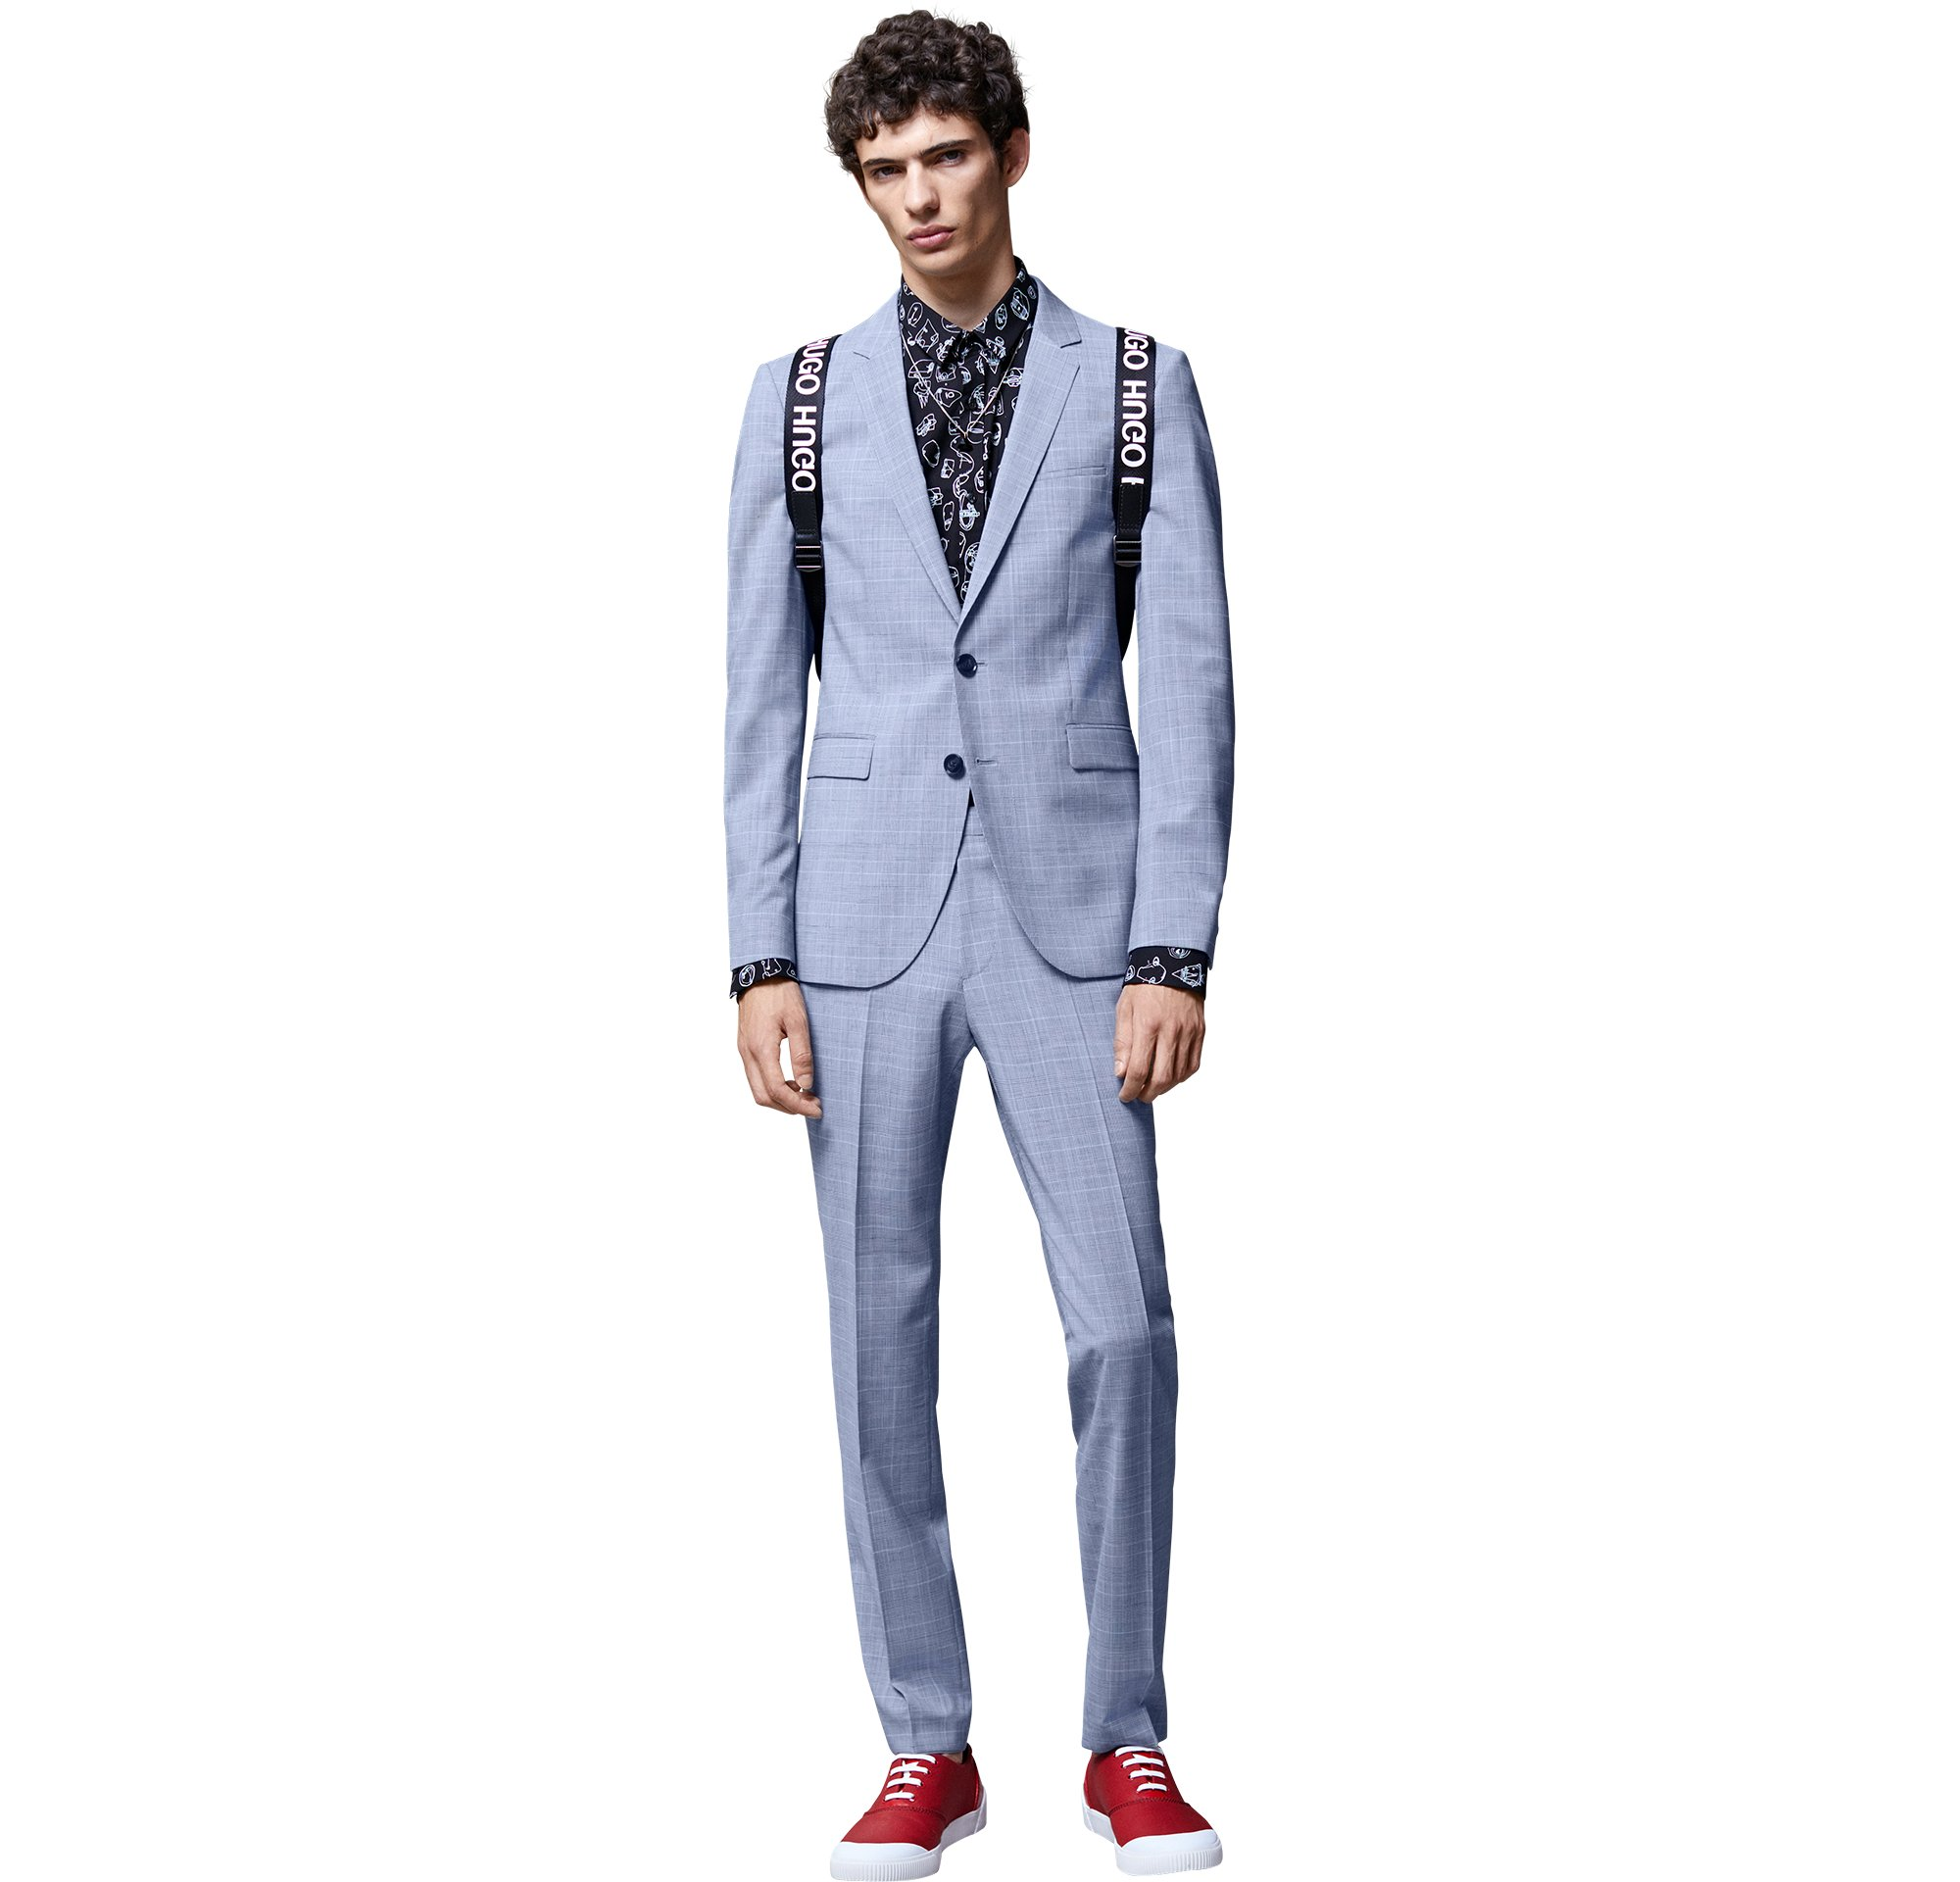 HUGO_Men_SR18_Look_11,